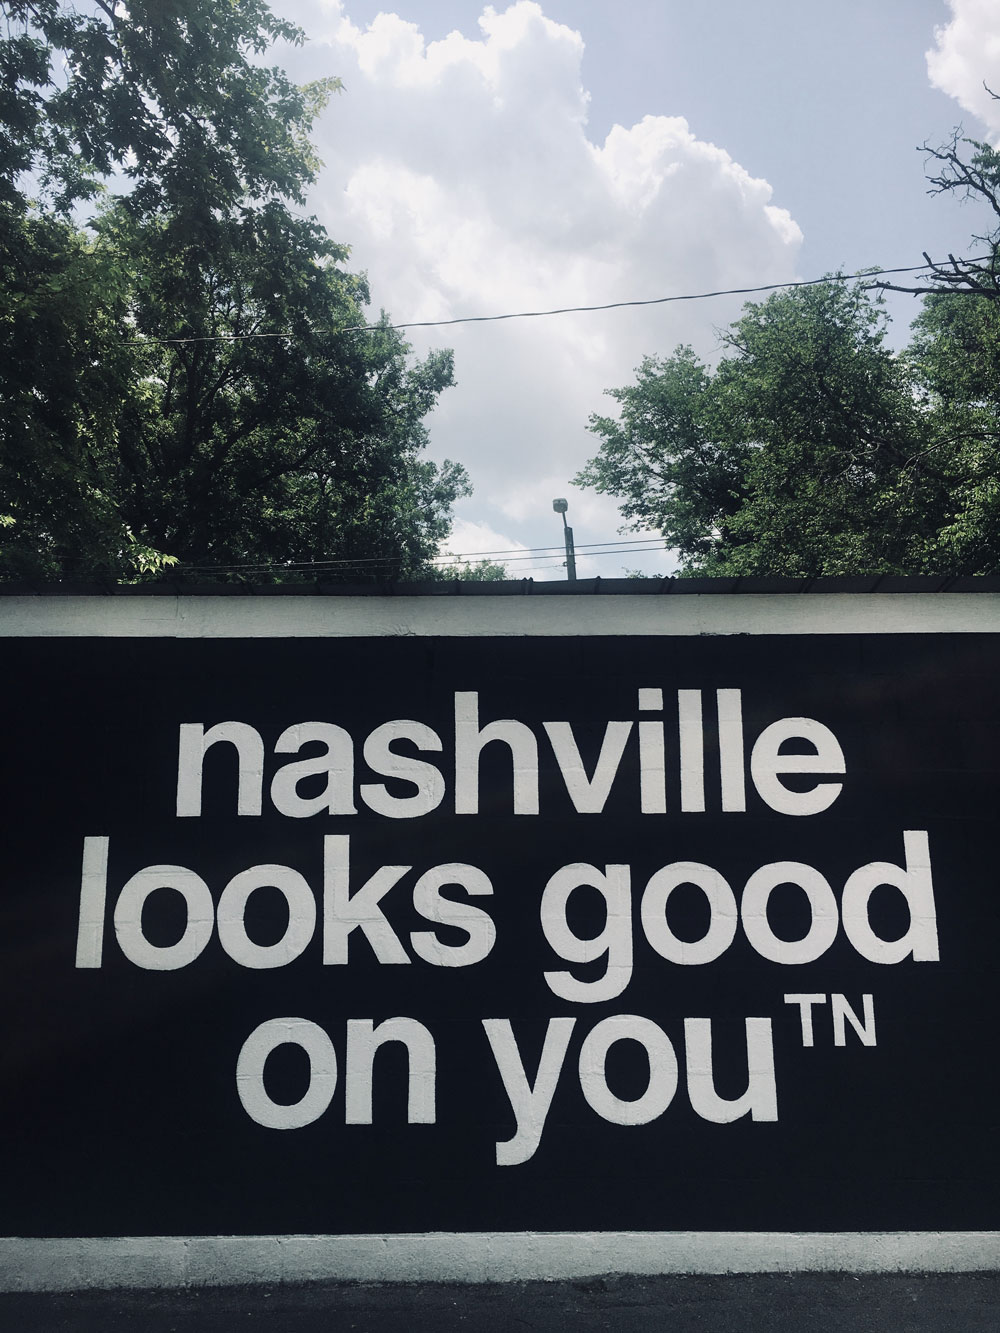 nashville looks good on your mural